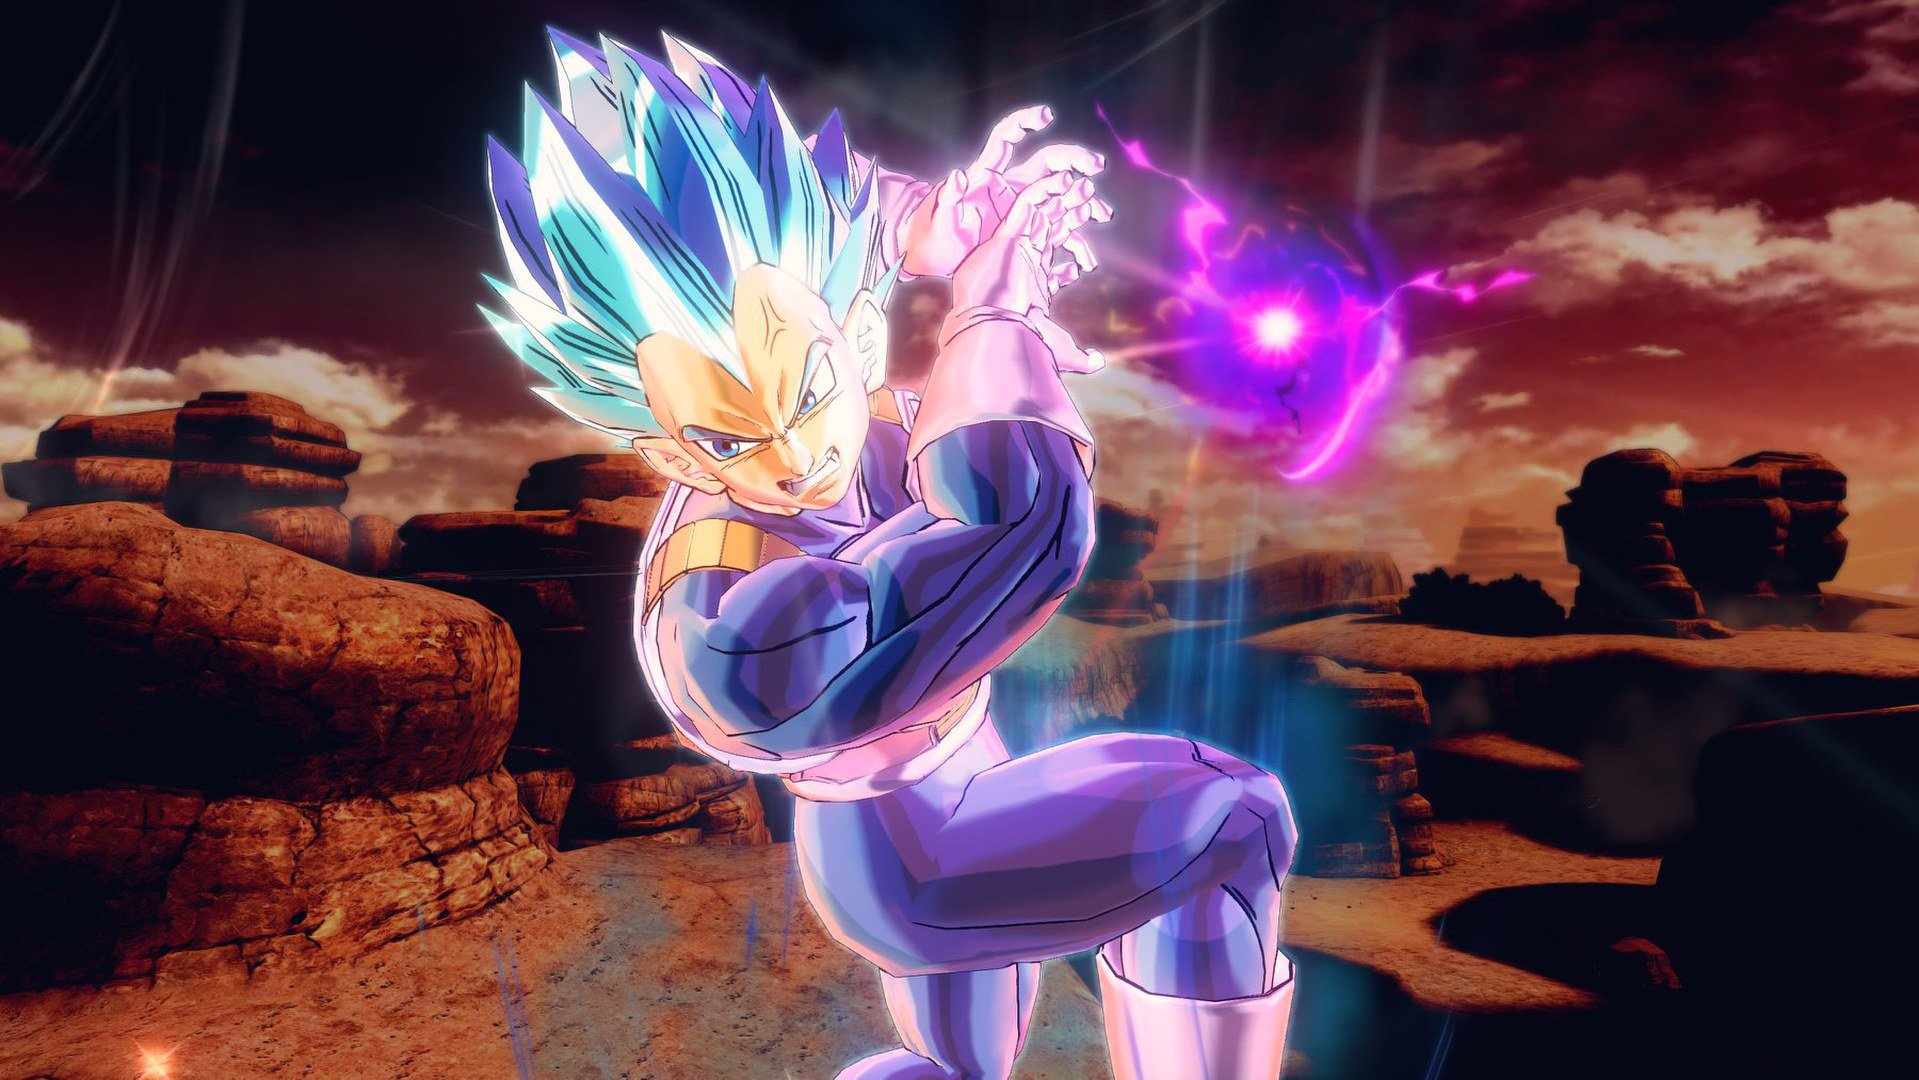 Dragon Ball Xenoverse 2: Here Are the First Images of Vegeta